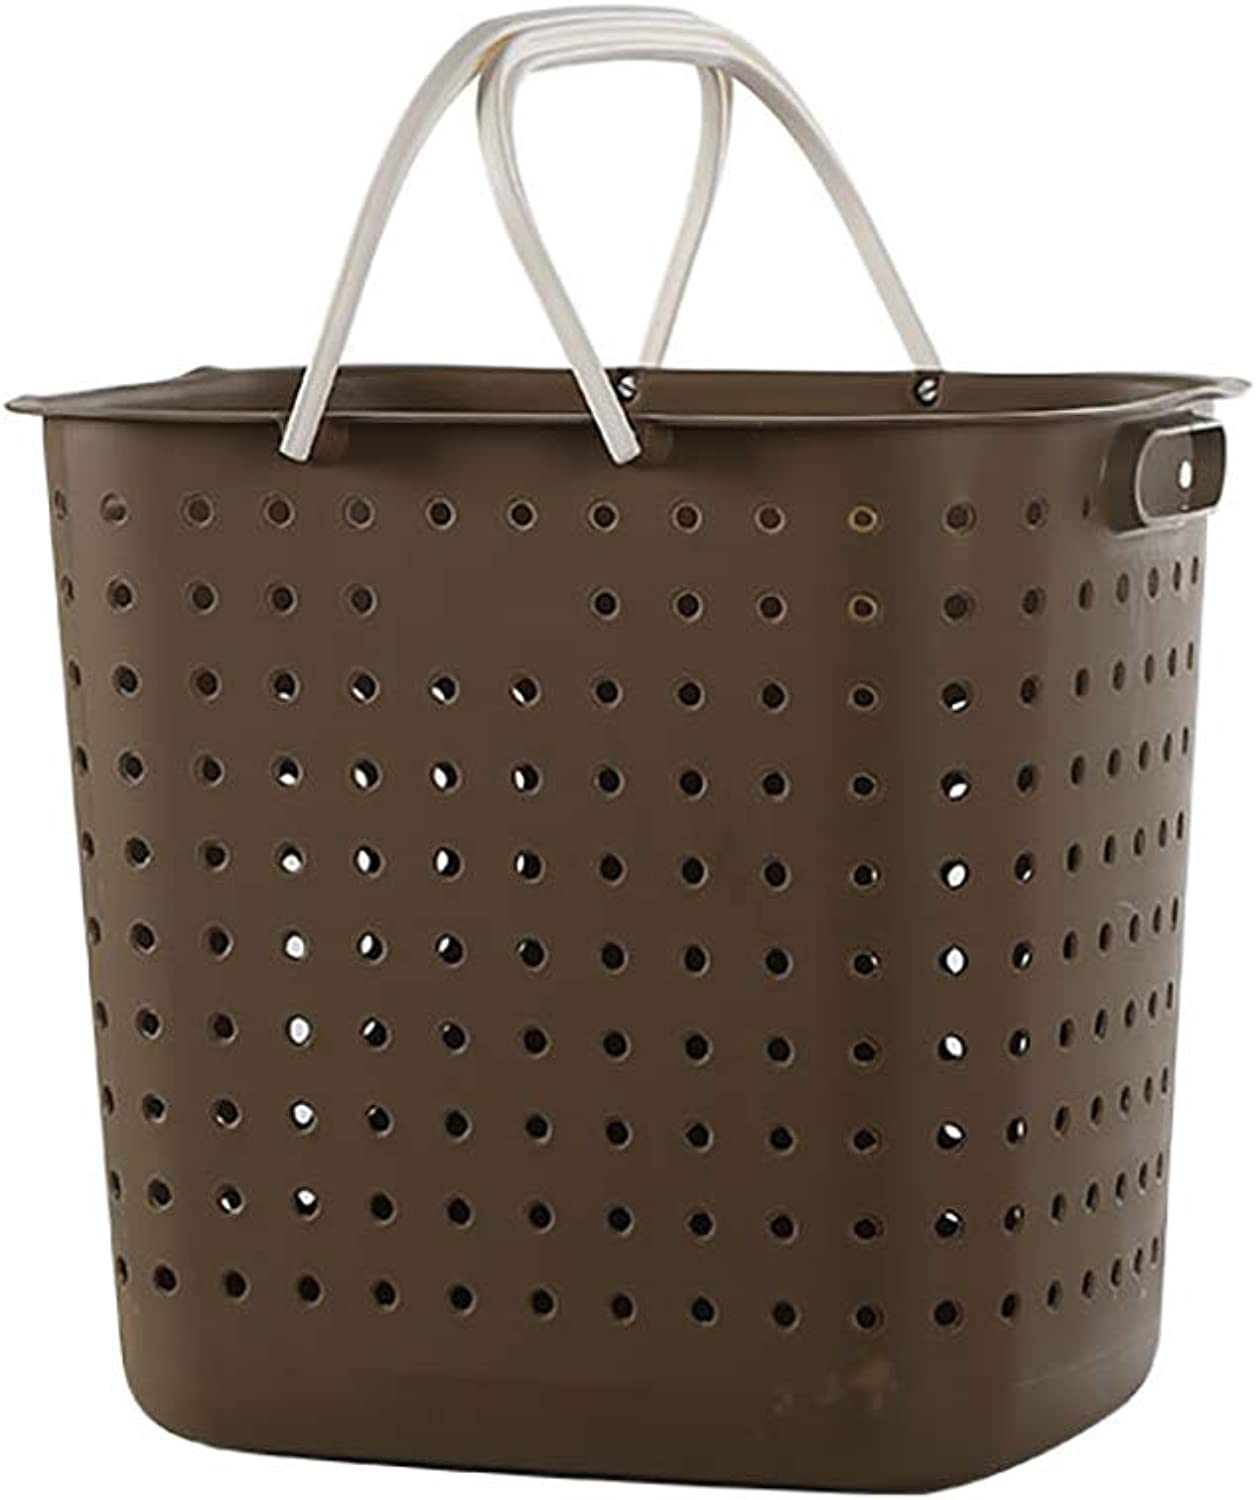 FANGFA Storage Baskets Plastic Bedroom Bathroom Clothes Toy Laundry Basket with Handle (4 colors are Optional) (color   Brown, Size   43  31  38cm)